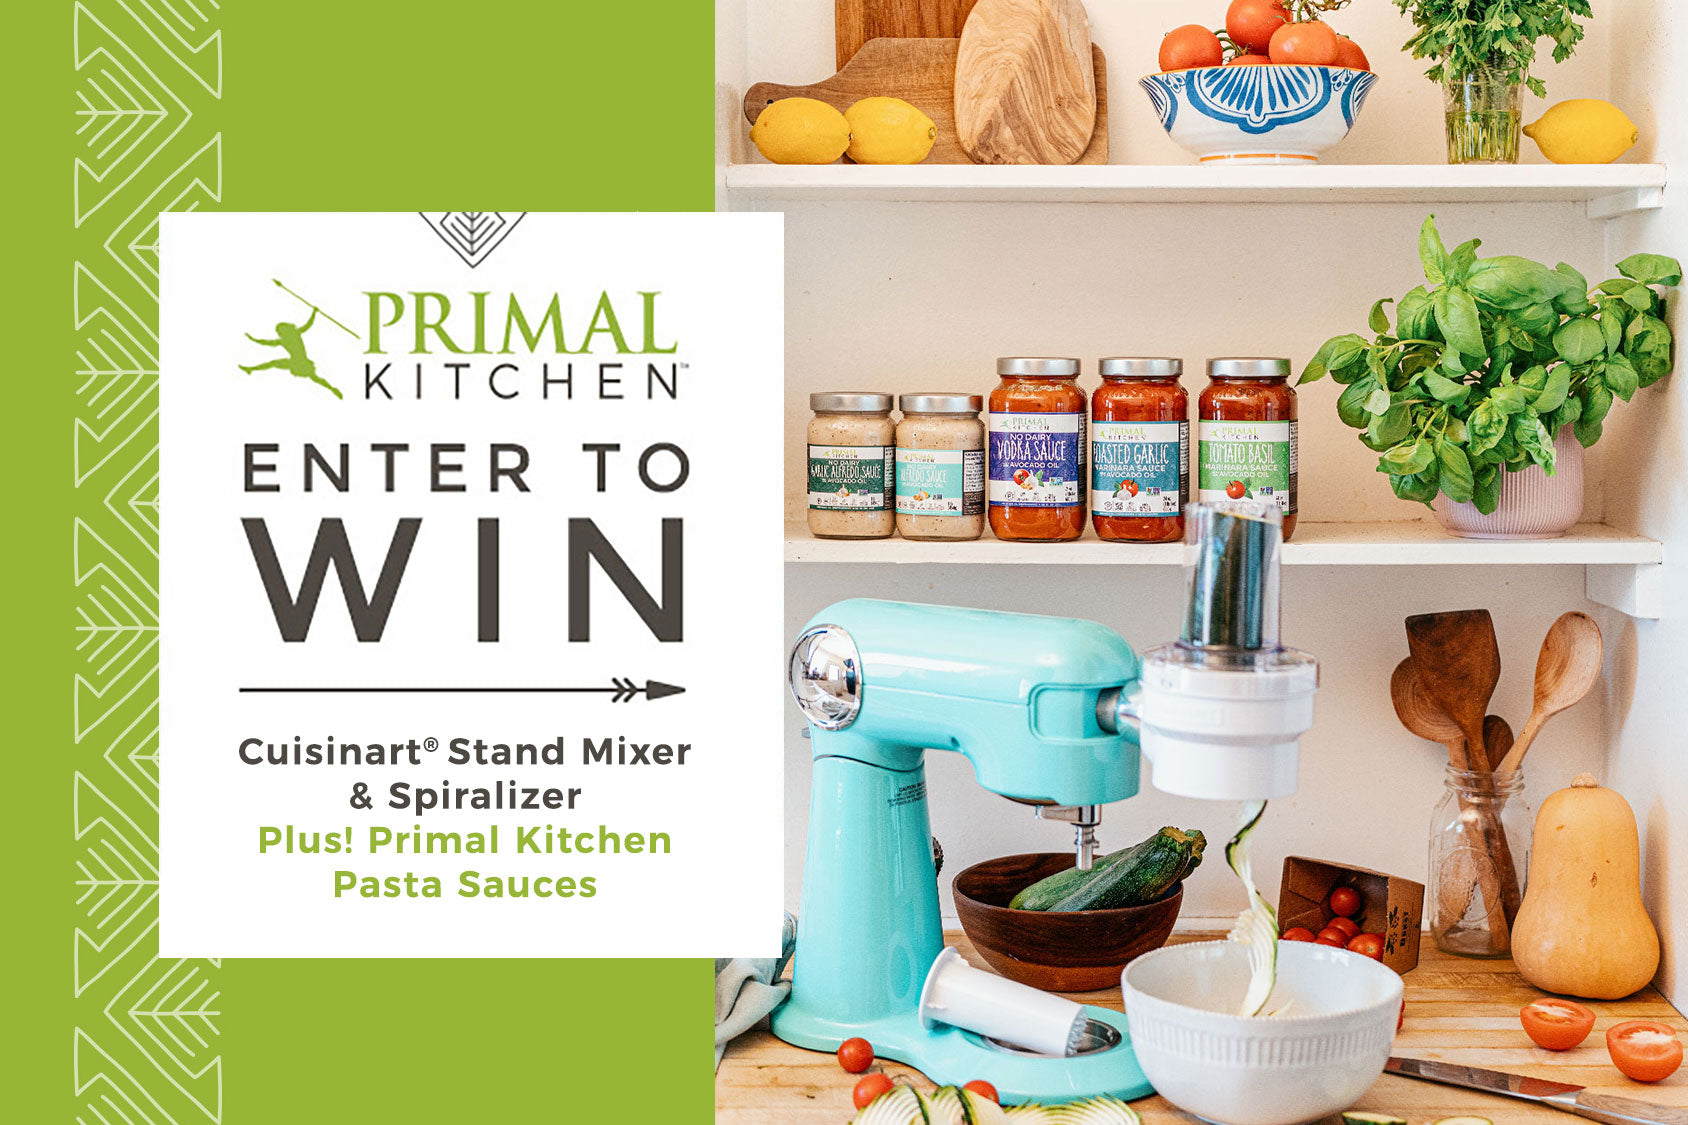 Win a Cuisinart Stand Mixer with a Spiralizer attachment and $300 in Primal Kitchen products!